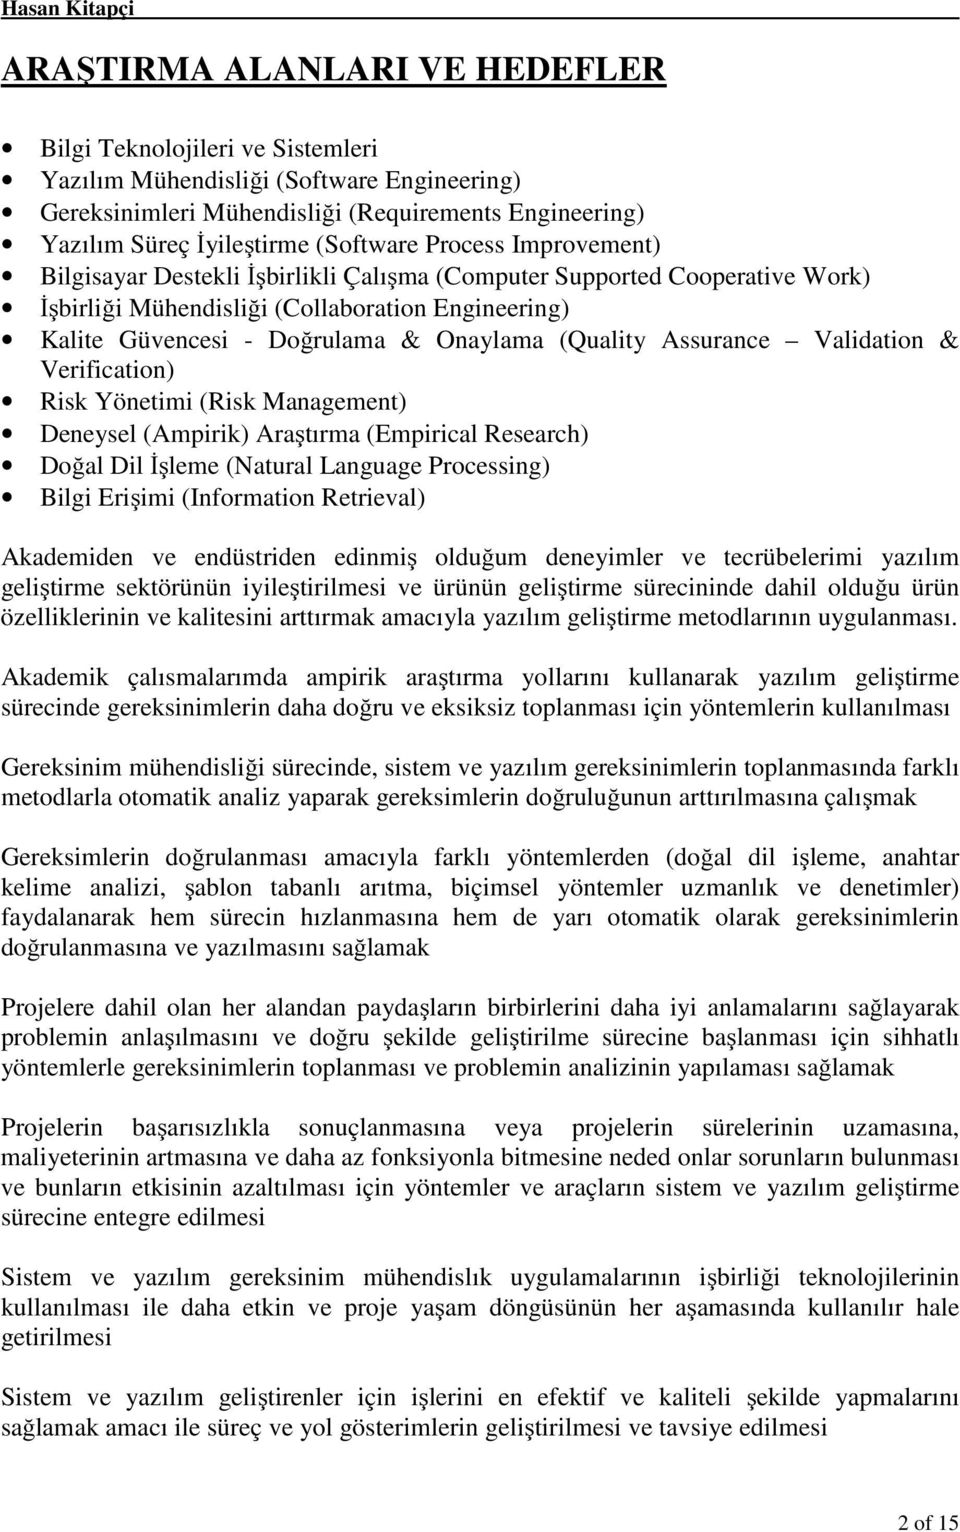 Assurance Validation & Verification) Risk Yönetimi (Risk Management) Deneysel (Ampirik) Araştırma (Empirical Research) Doğal Dil İşleme (Natural Language Processing) Bilgi Erişimi (Information